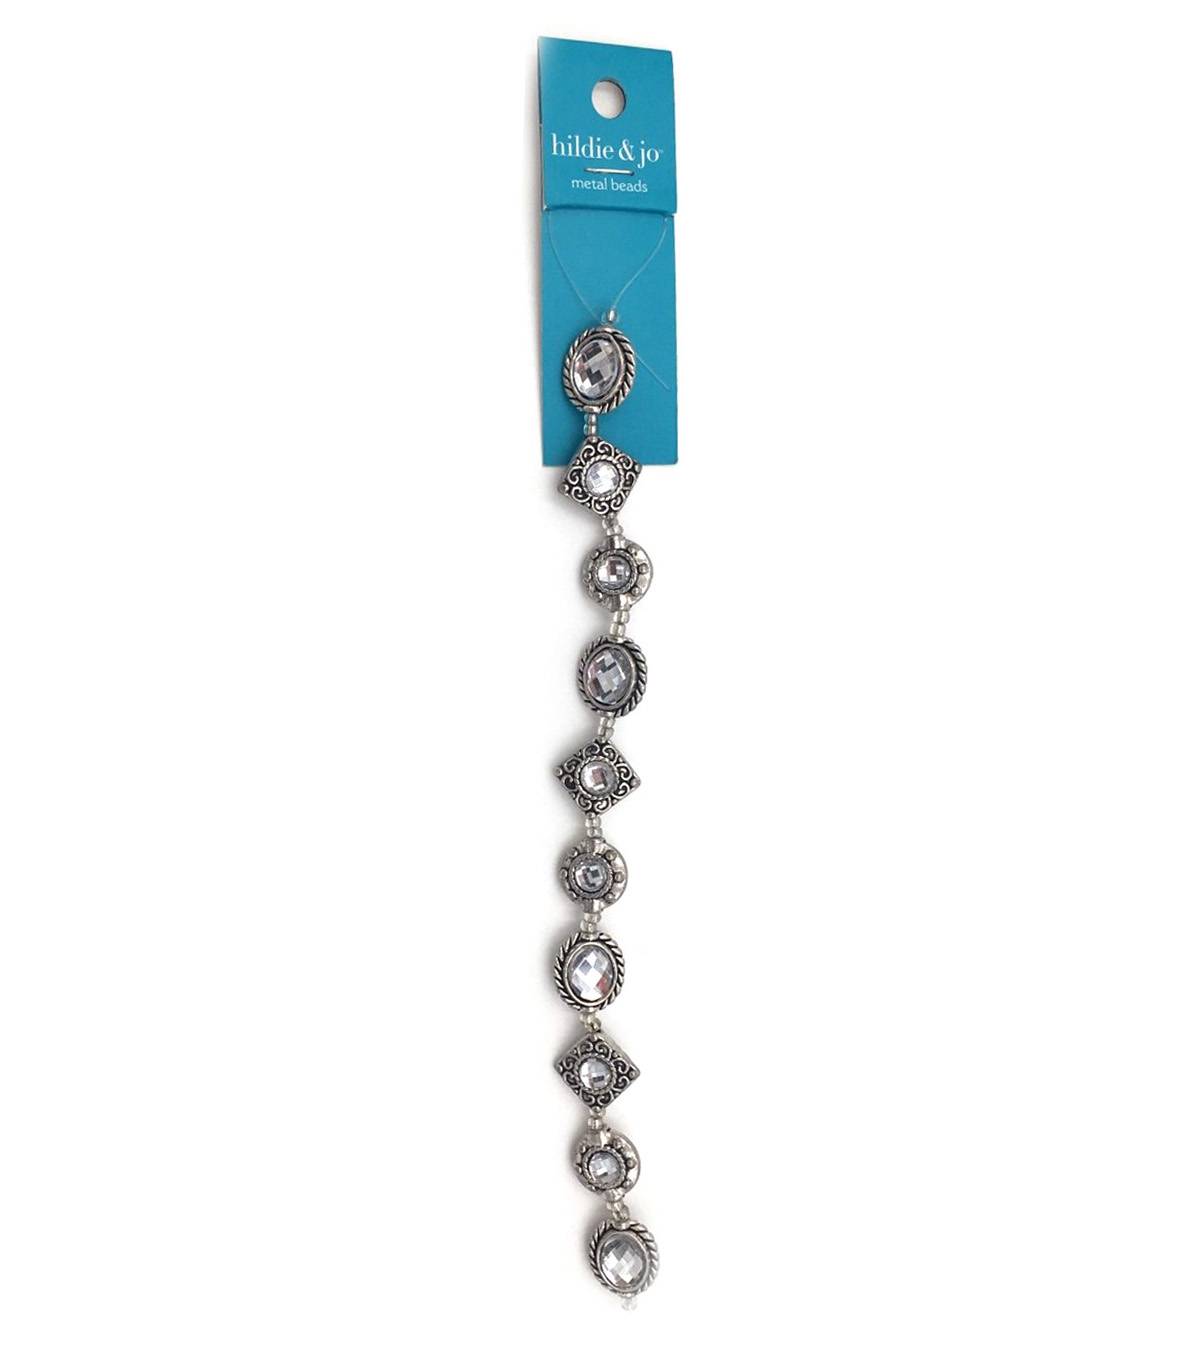 Blue Moon Strung Metal Beads,Various Shapes,Silver w/Crystals